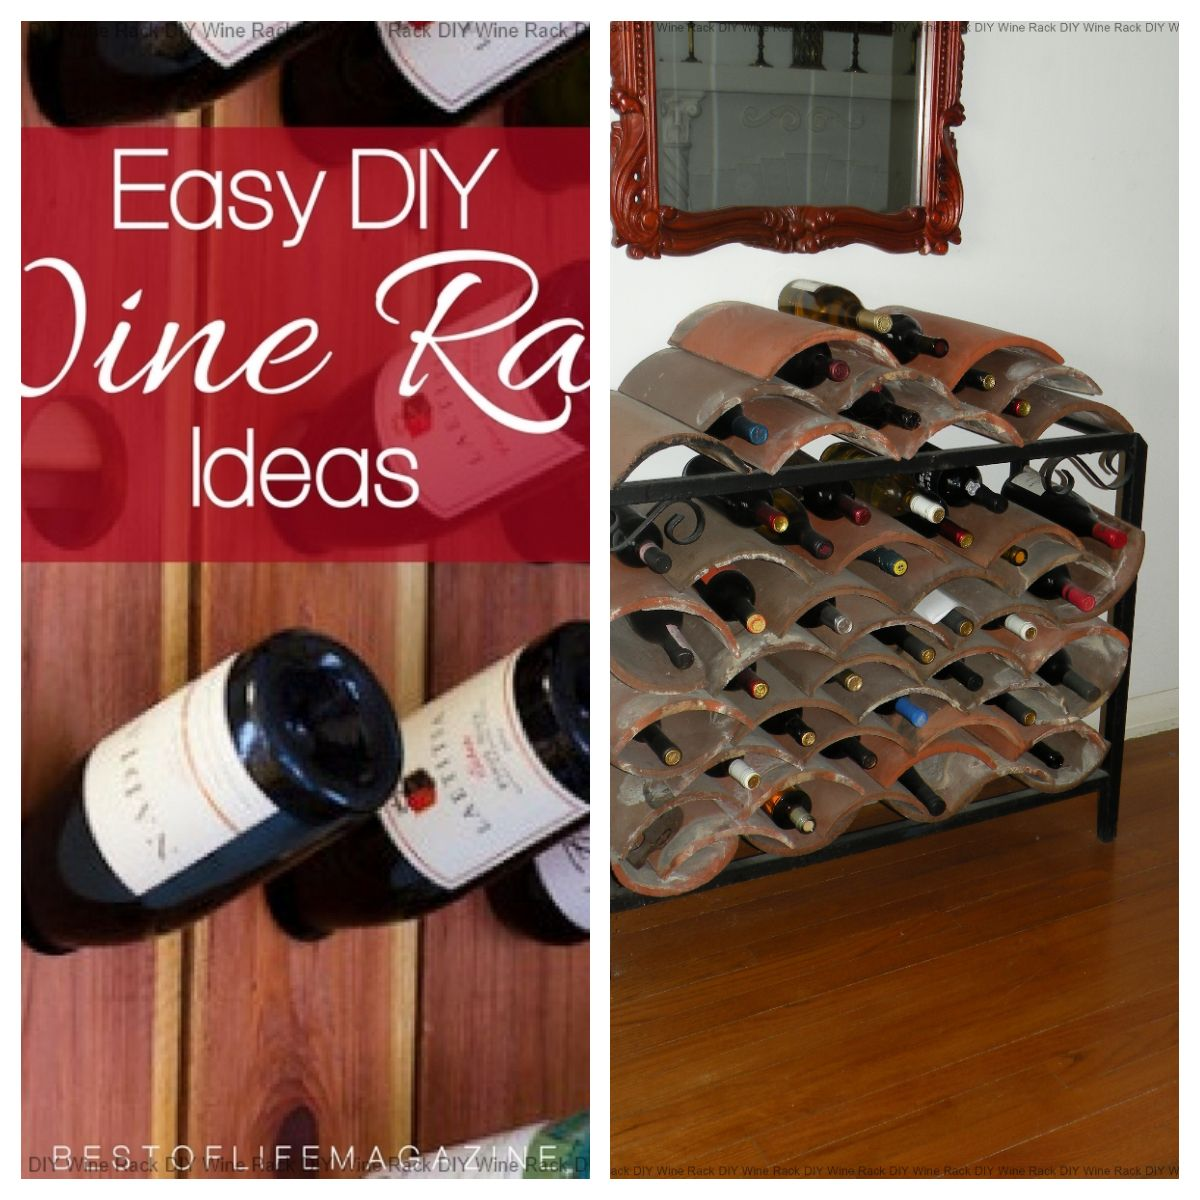 Wine Rack Wine Rack Wall Wine Rack Ideas Wine Rack Diy Wine Rack Cabinet In 2020 Wine Rack Cabinet Diy Wine Rack Wine Rack Wall